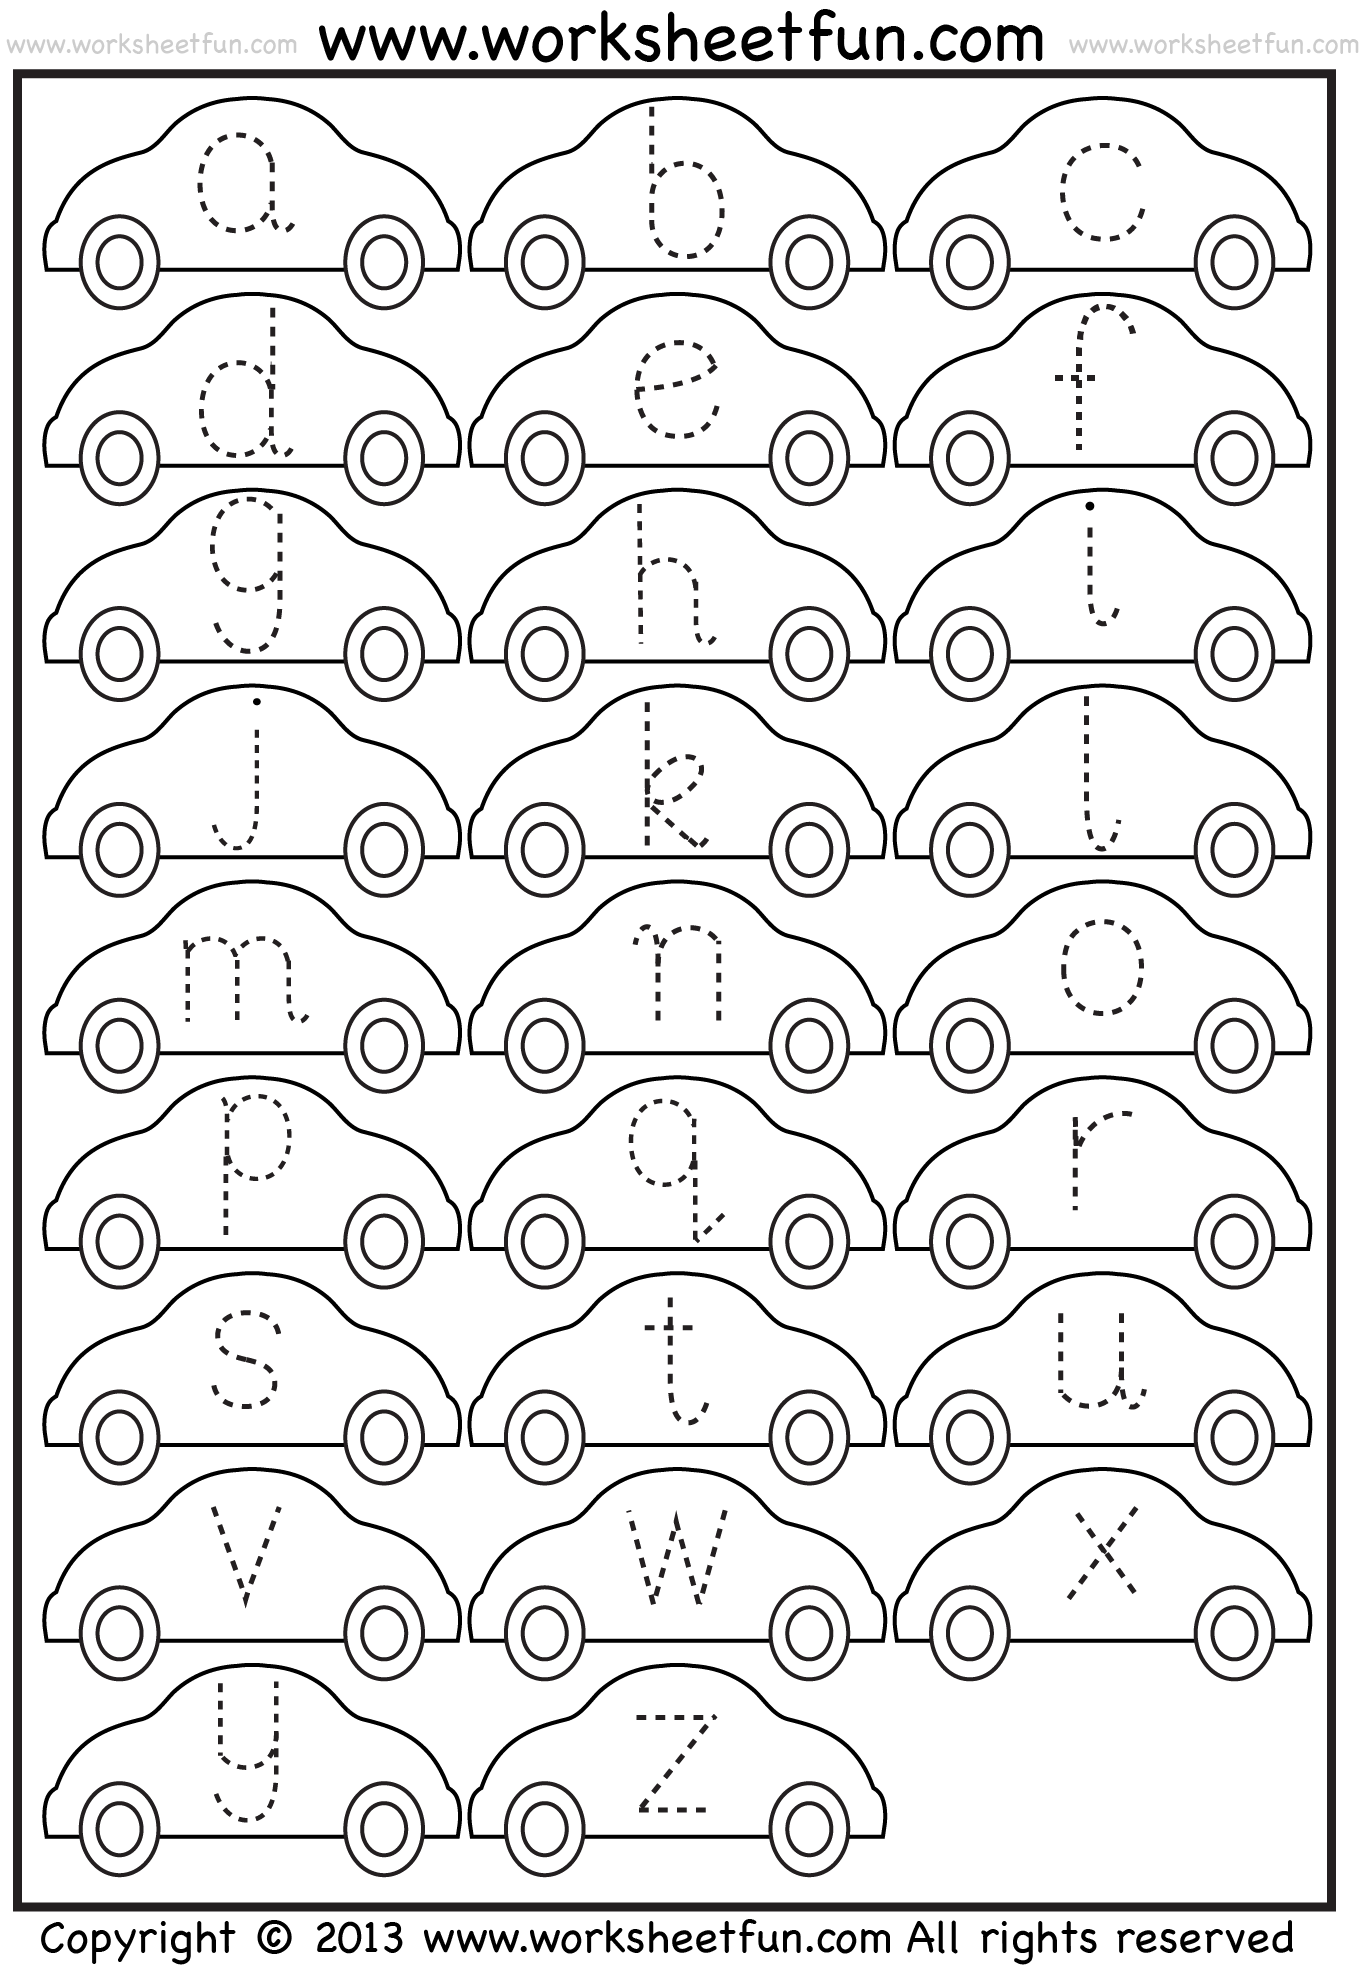 Small Letter Tracing Lowercase Worksheet Car Free Printable Worksheets Worksheetfun